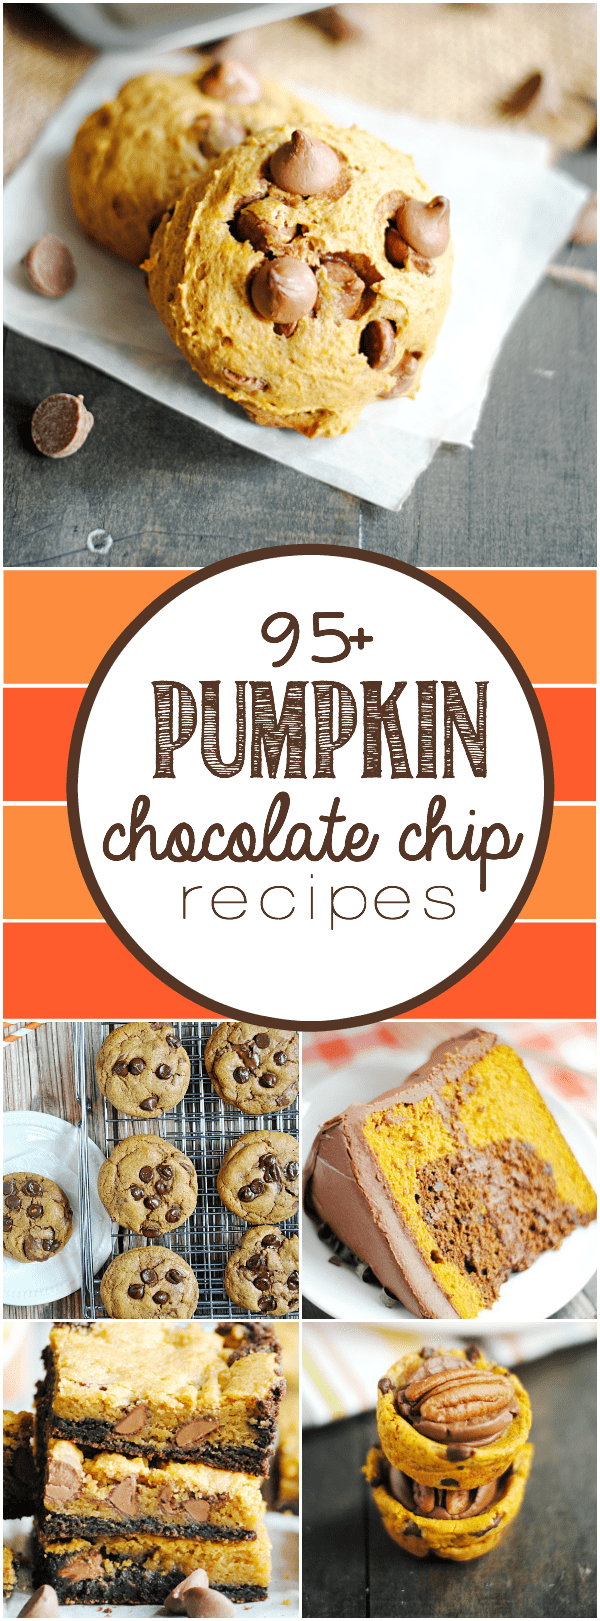 Over 95 Pumpkin Chocolate Chip Recipes for delicious breads, cakes, cookies, and other fall treats!